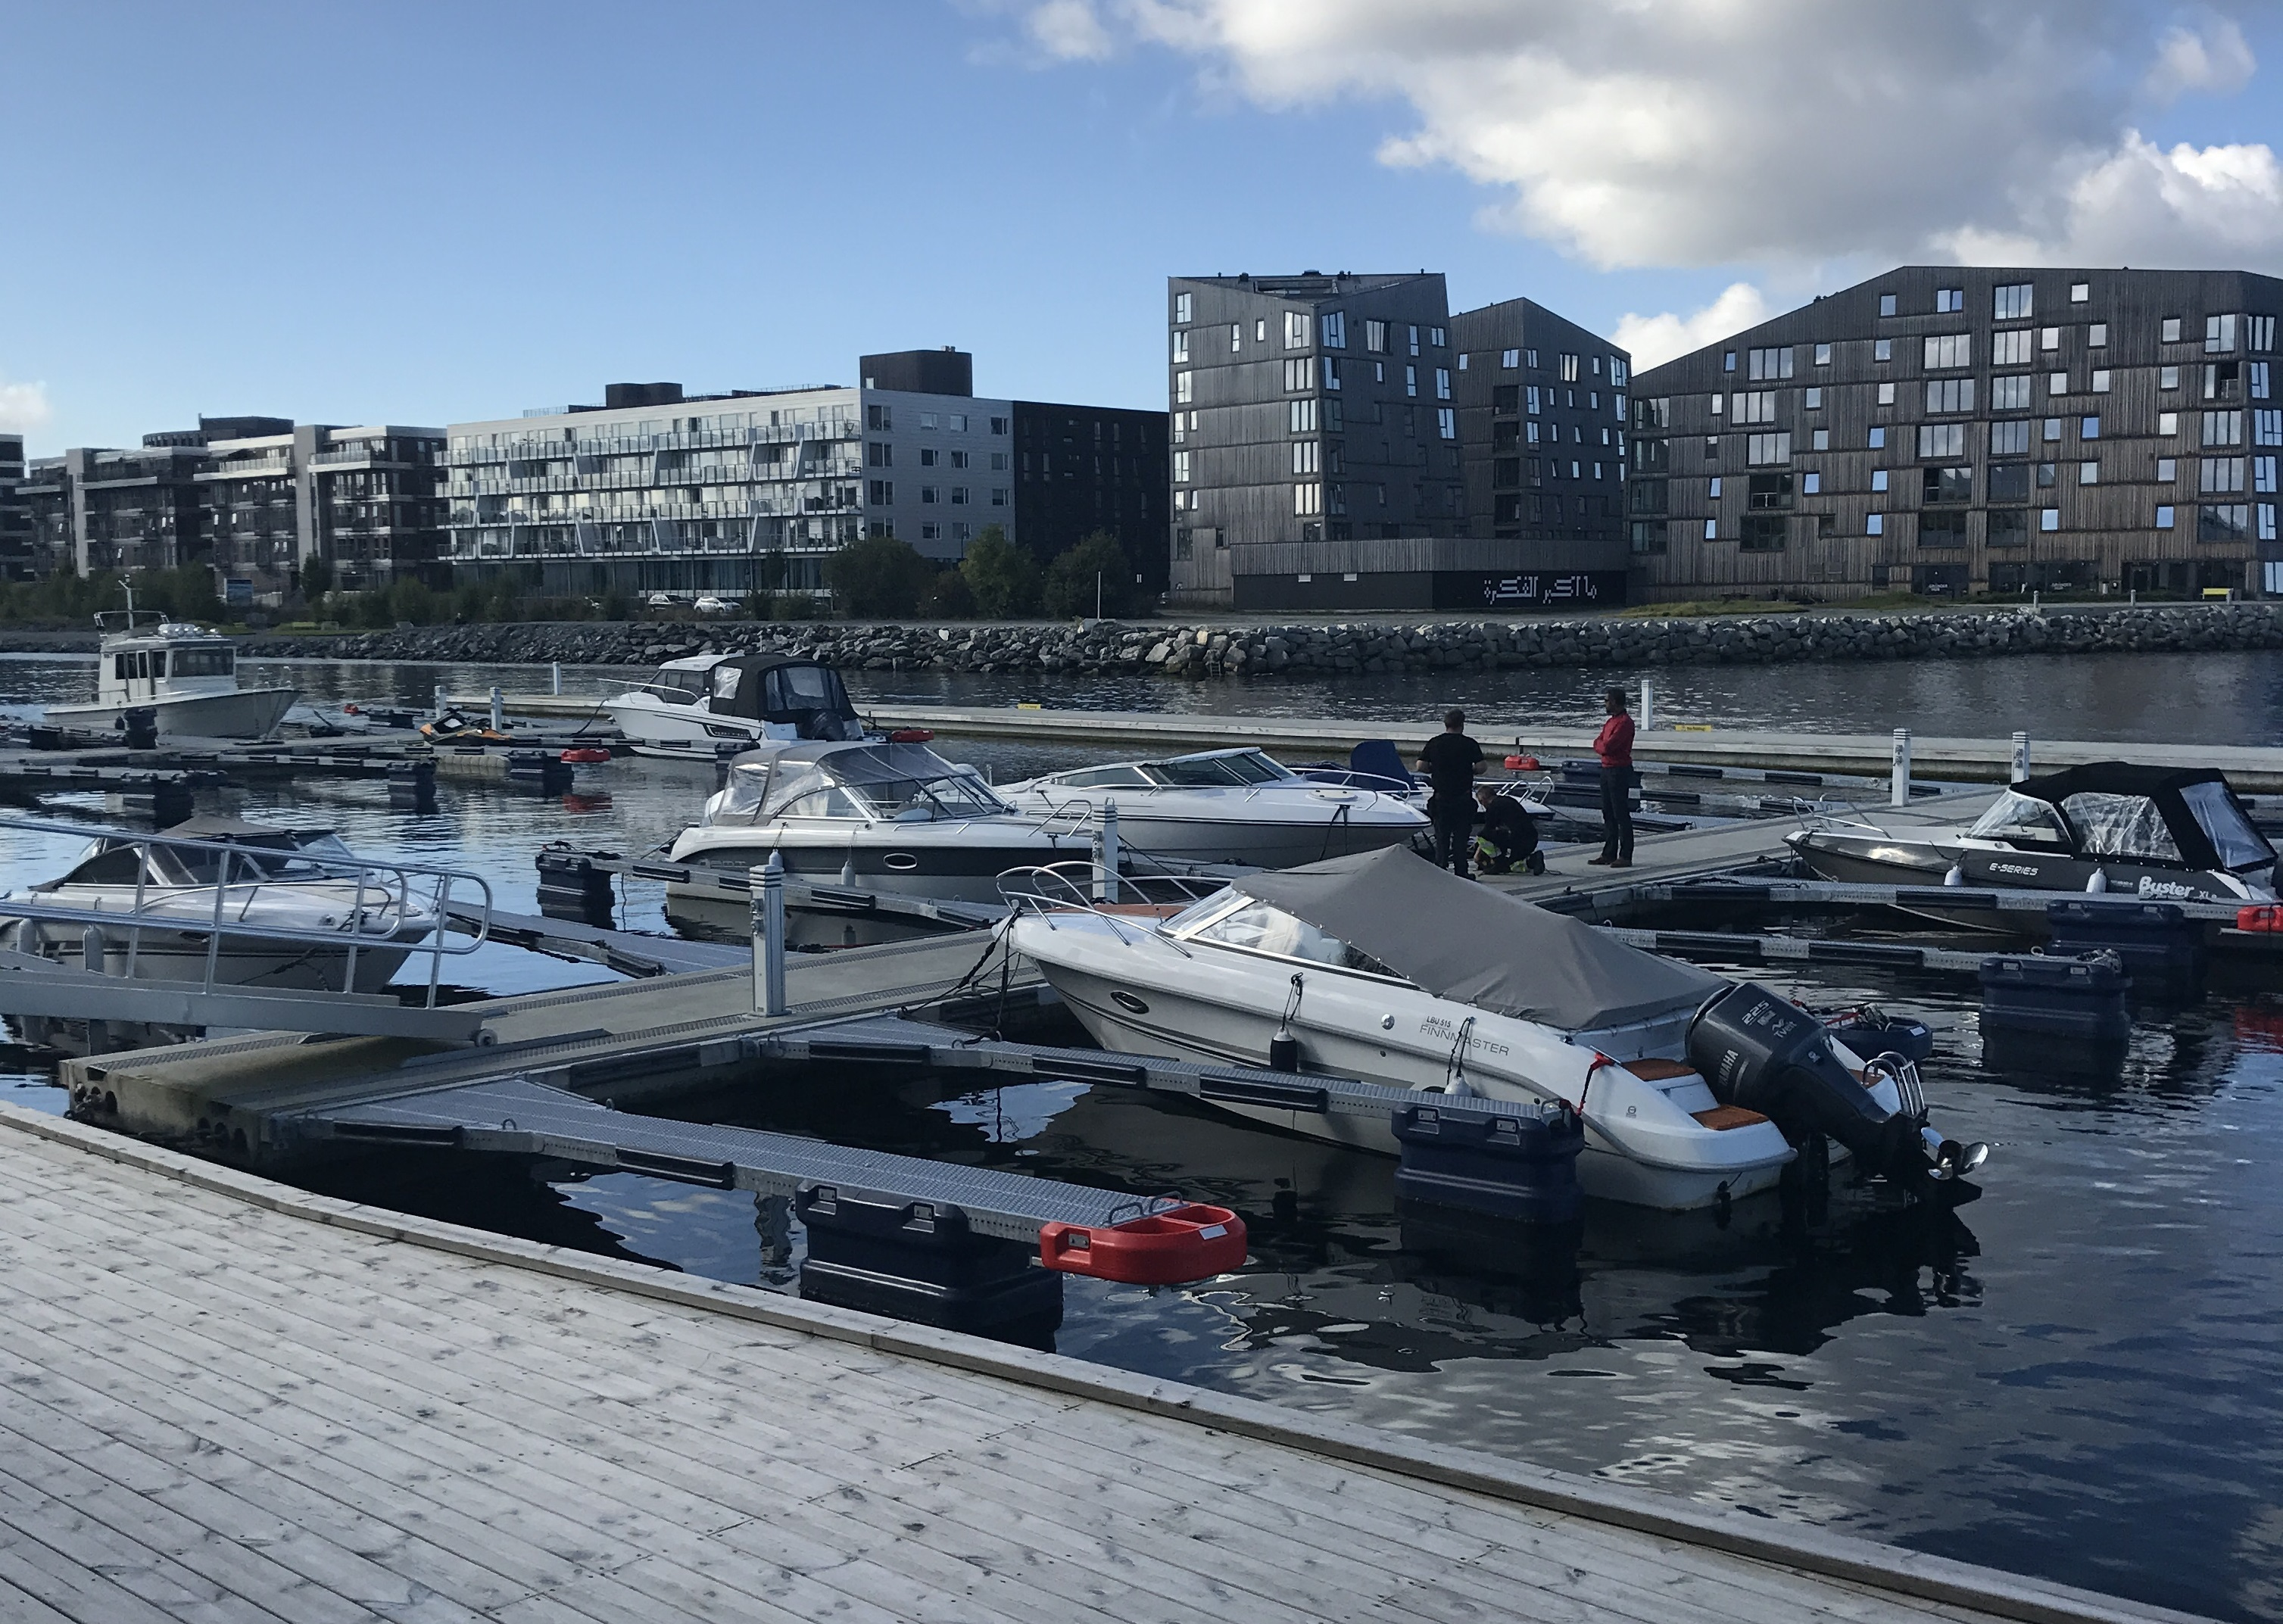 https://www.marinasolutions.no/uploads/Lervig-brygge-stavanger-Øst-4.jpg